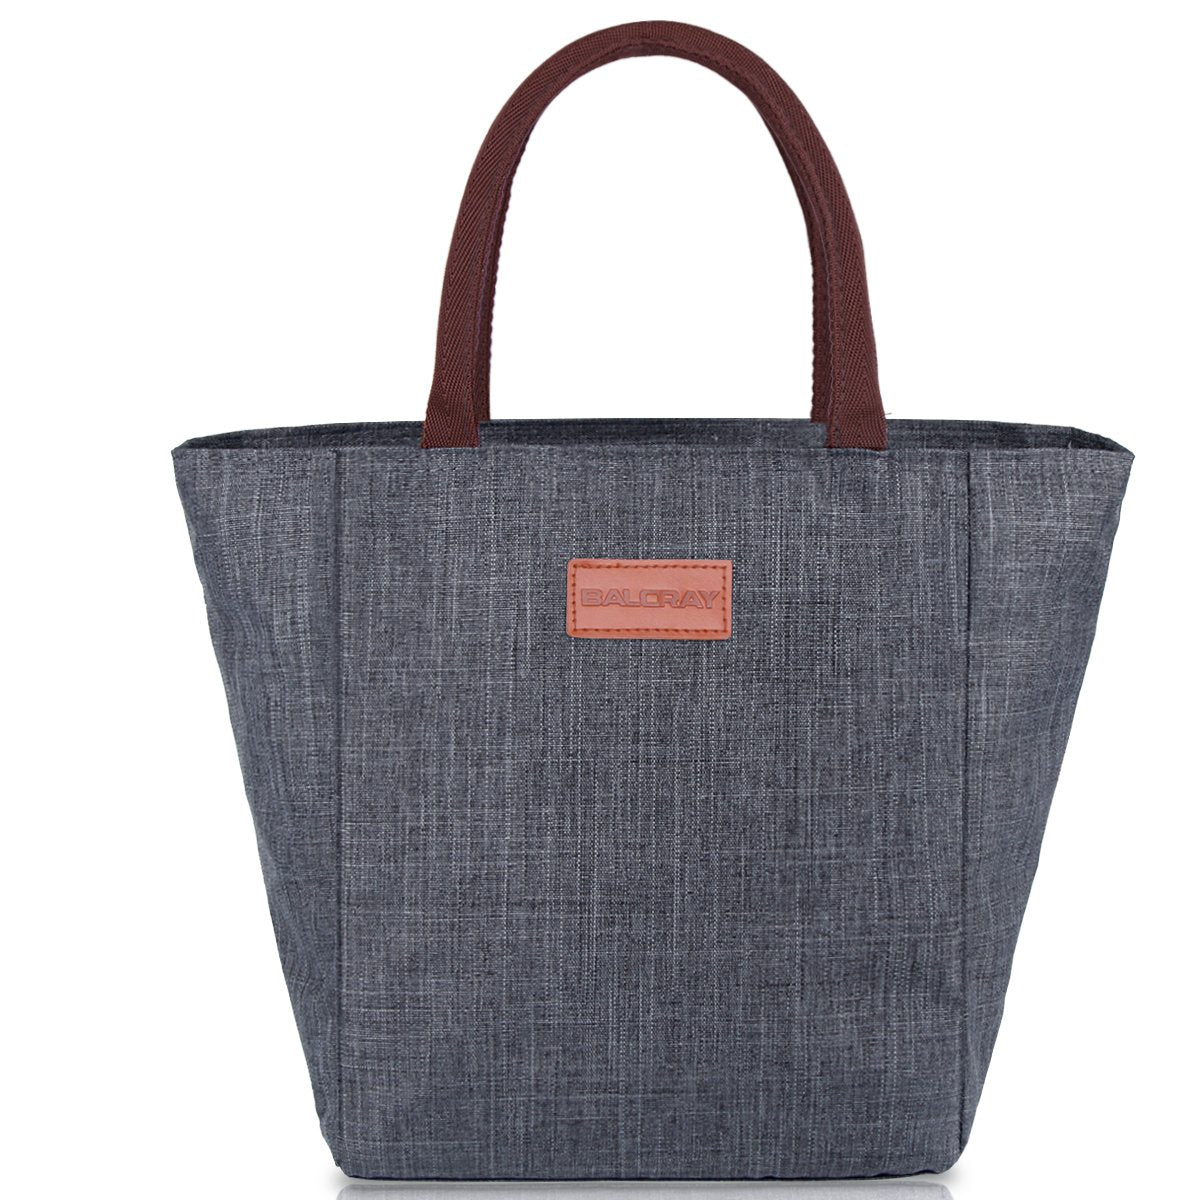 a058950fd039 BALORAY Lunch Bag Tote Bag Lunch Organizer Lunch Holder Lunch Container  (G-199L Grey)